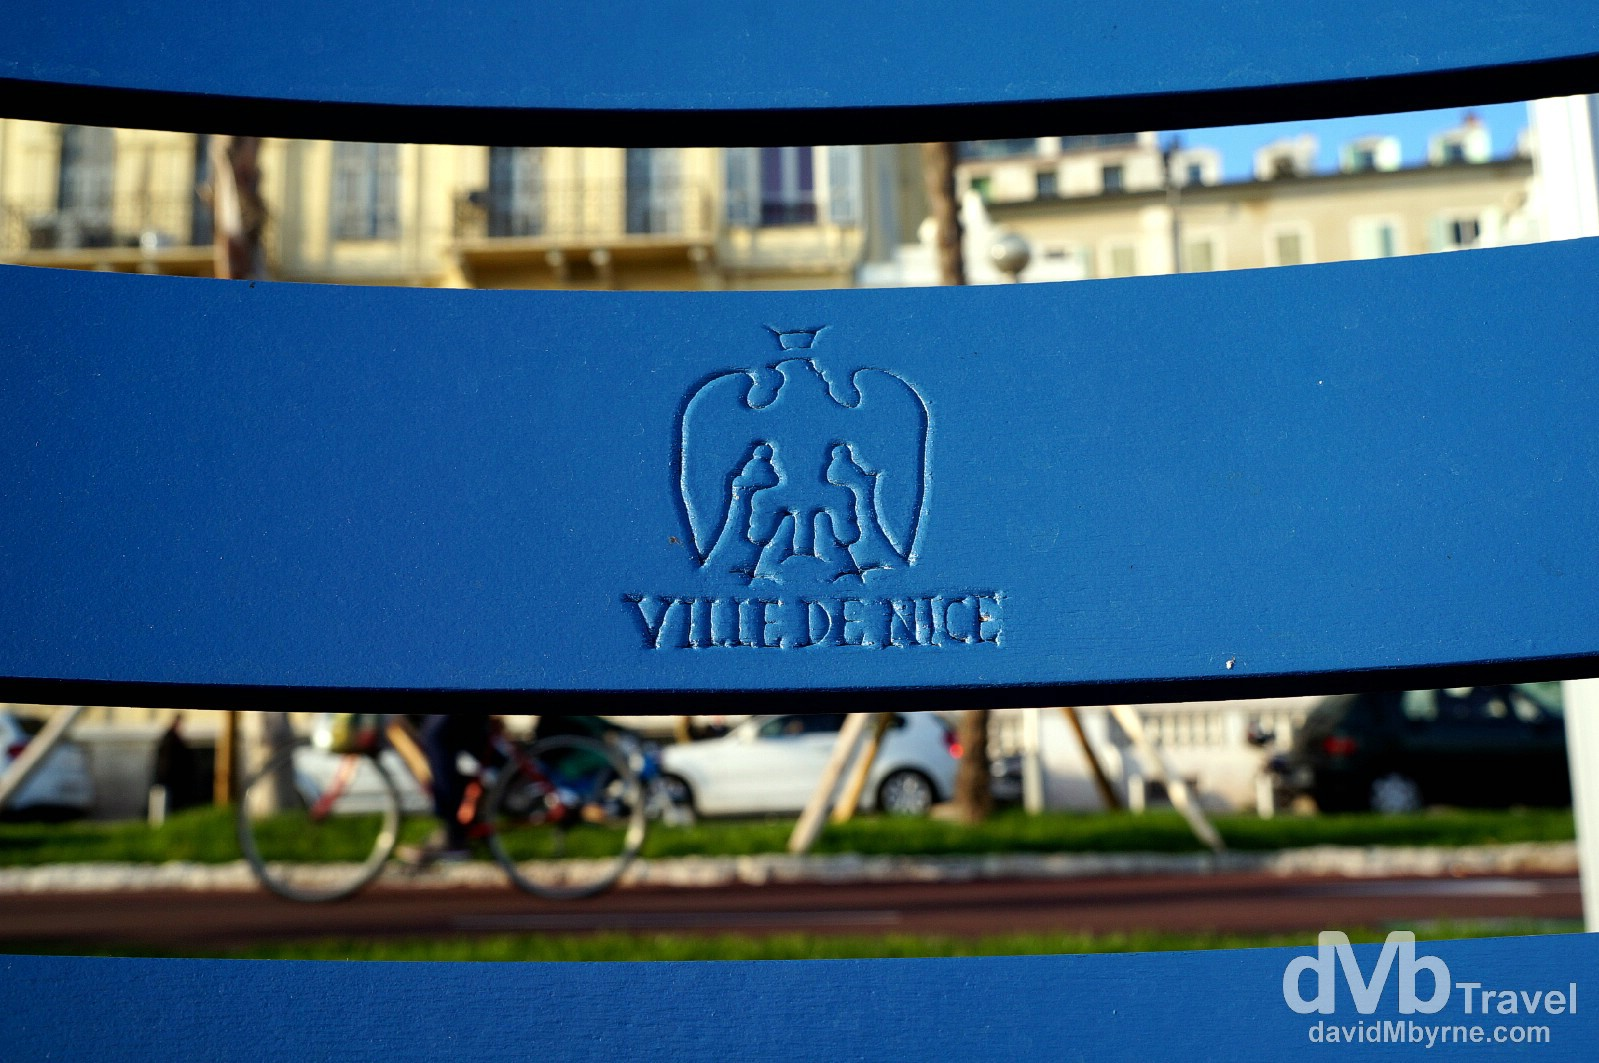 Distinctive blue seats on the beachfront Promenade des Anglais, Nice, Côte d'Azur, France. March 14, 2014.